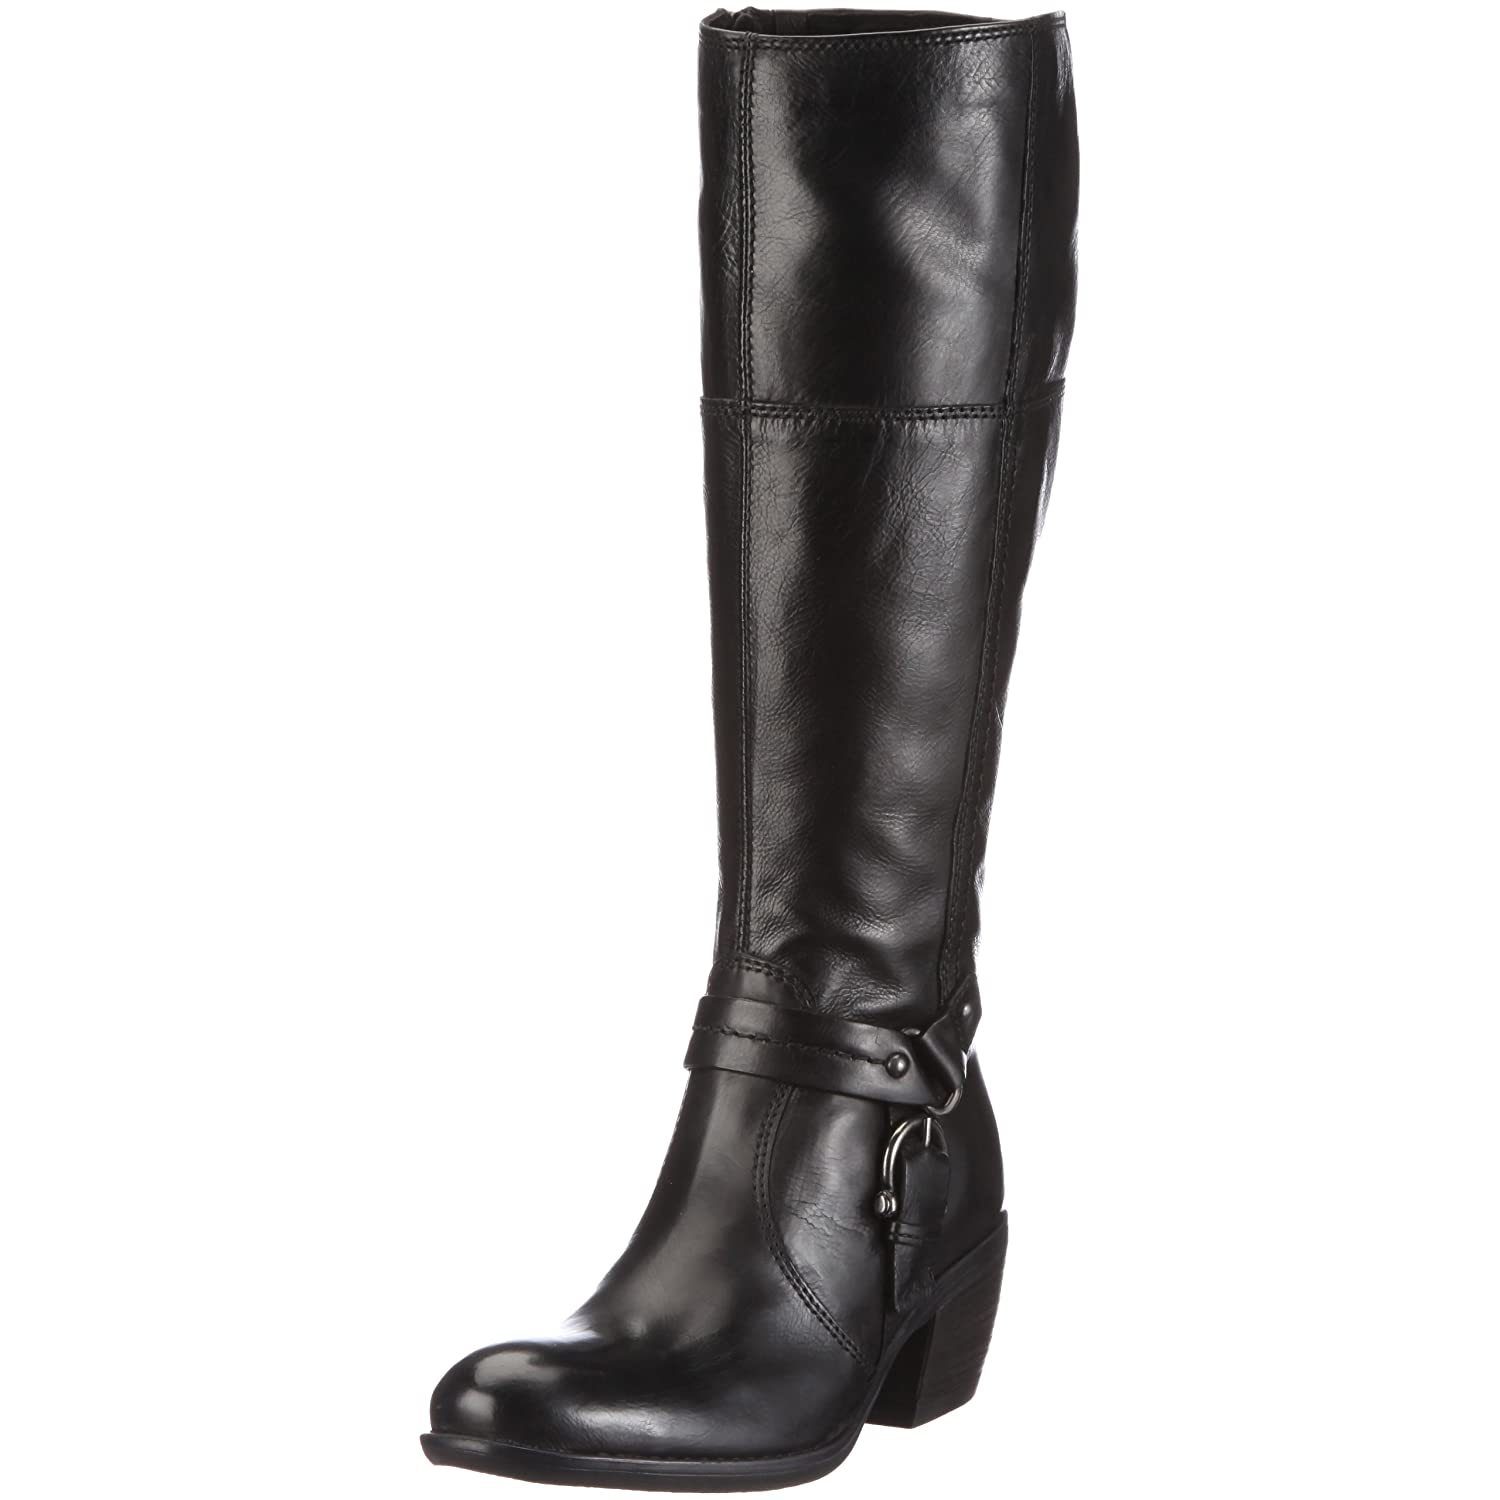 Clarks Womens Mascapone Mix Boots Black Leather 9 UK: Amazon.co.uk: Shoes &  Bags